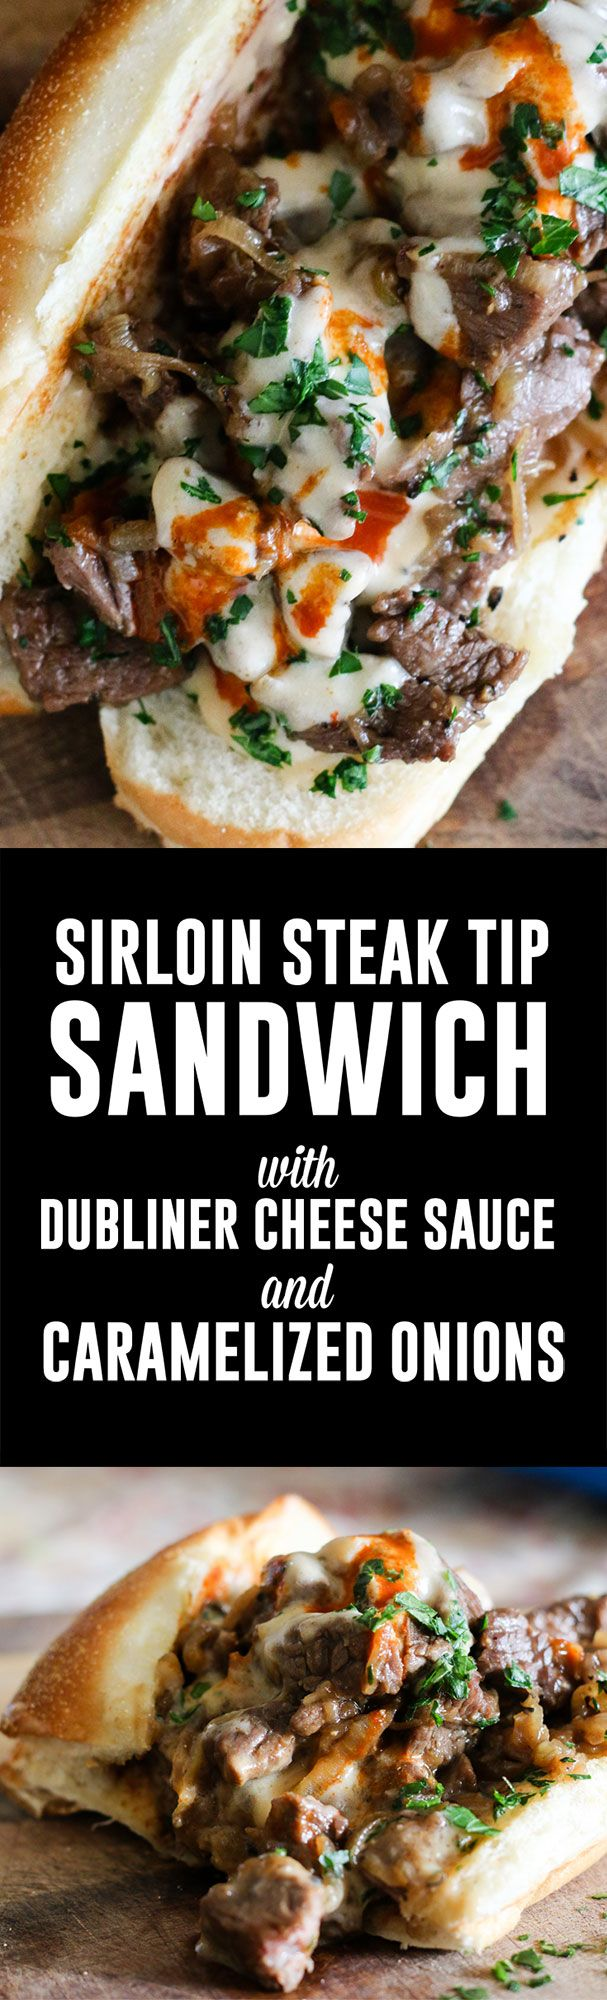 Steak Tip Sandwich with Dubliner Cheese Sauce and Caramelized Onions